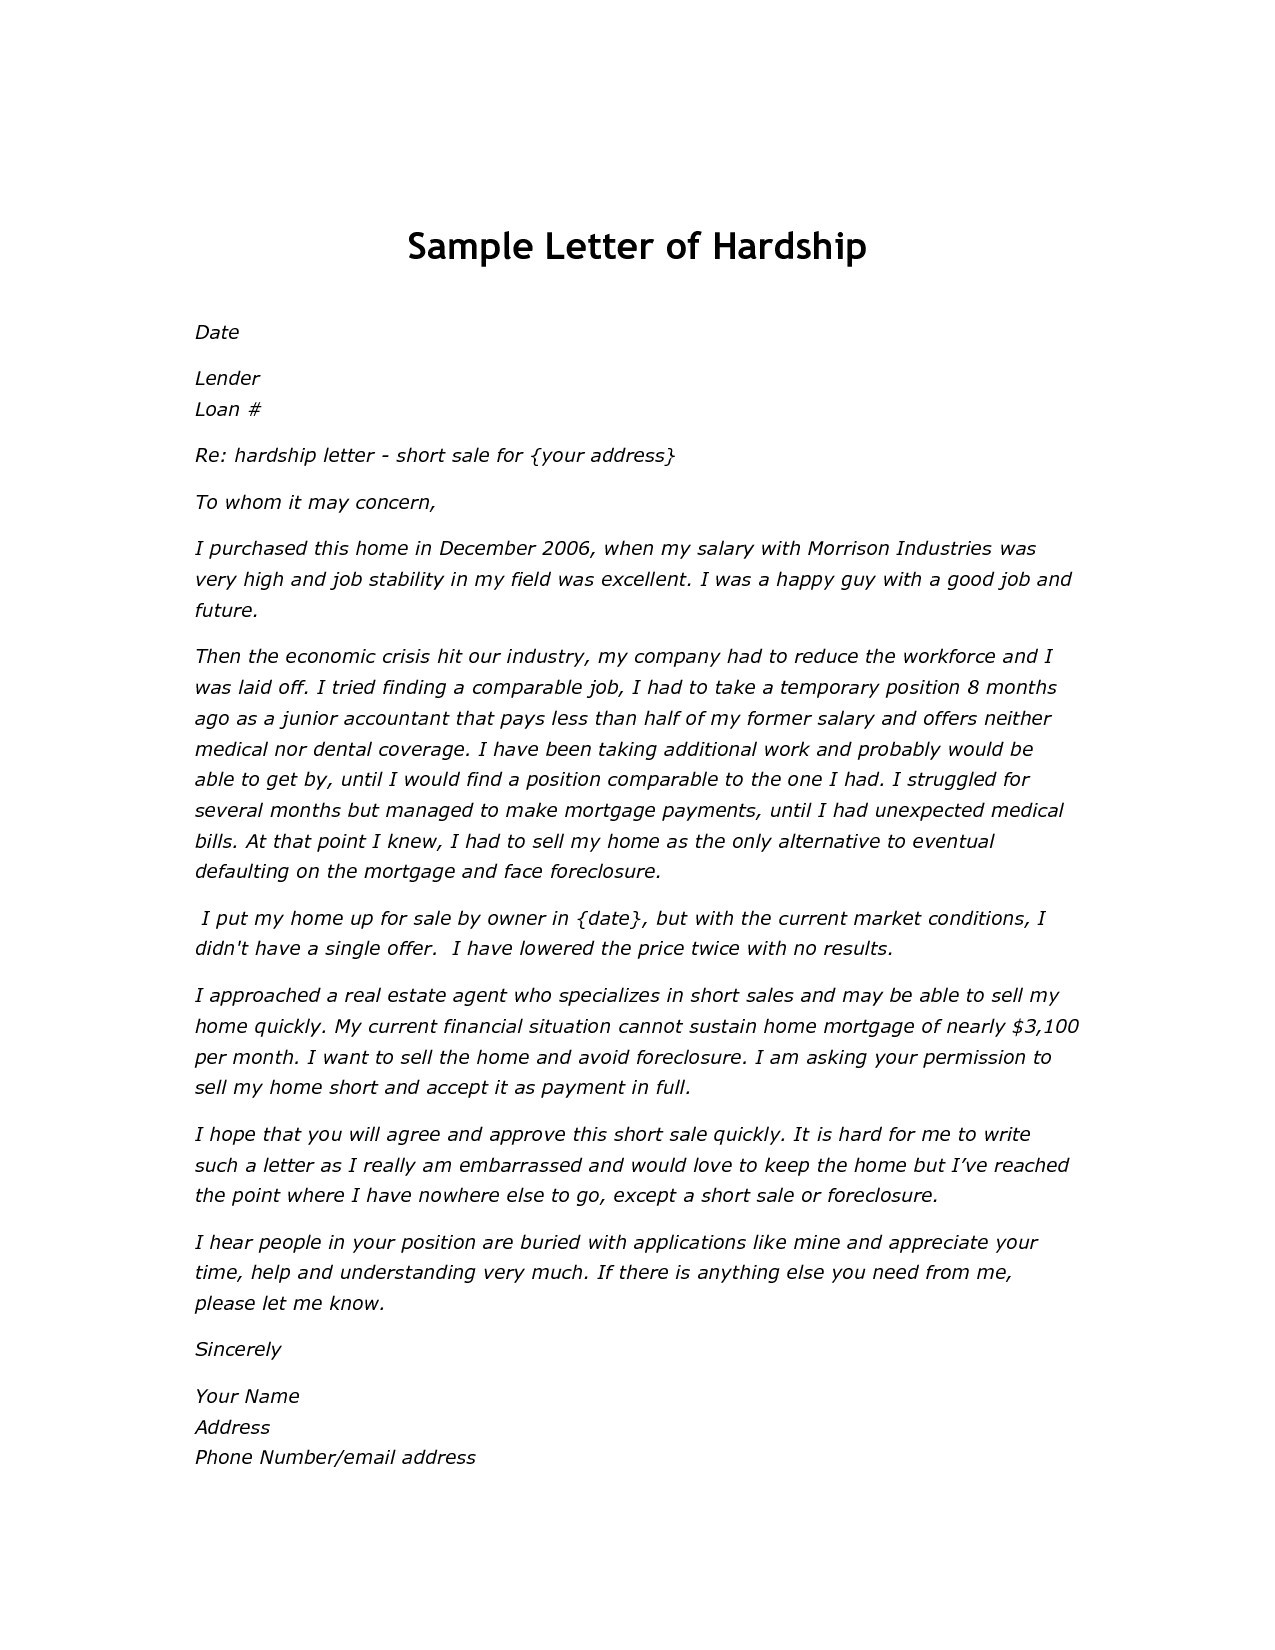 Short Sale Hardship Letter Template - Hardship Letter Sample Beautiful Financial Hardship form Lovely 15